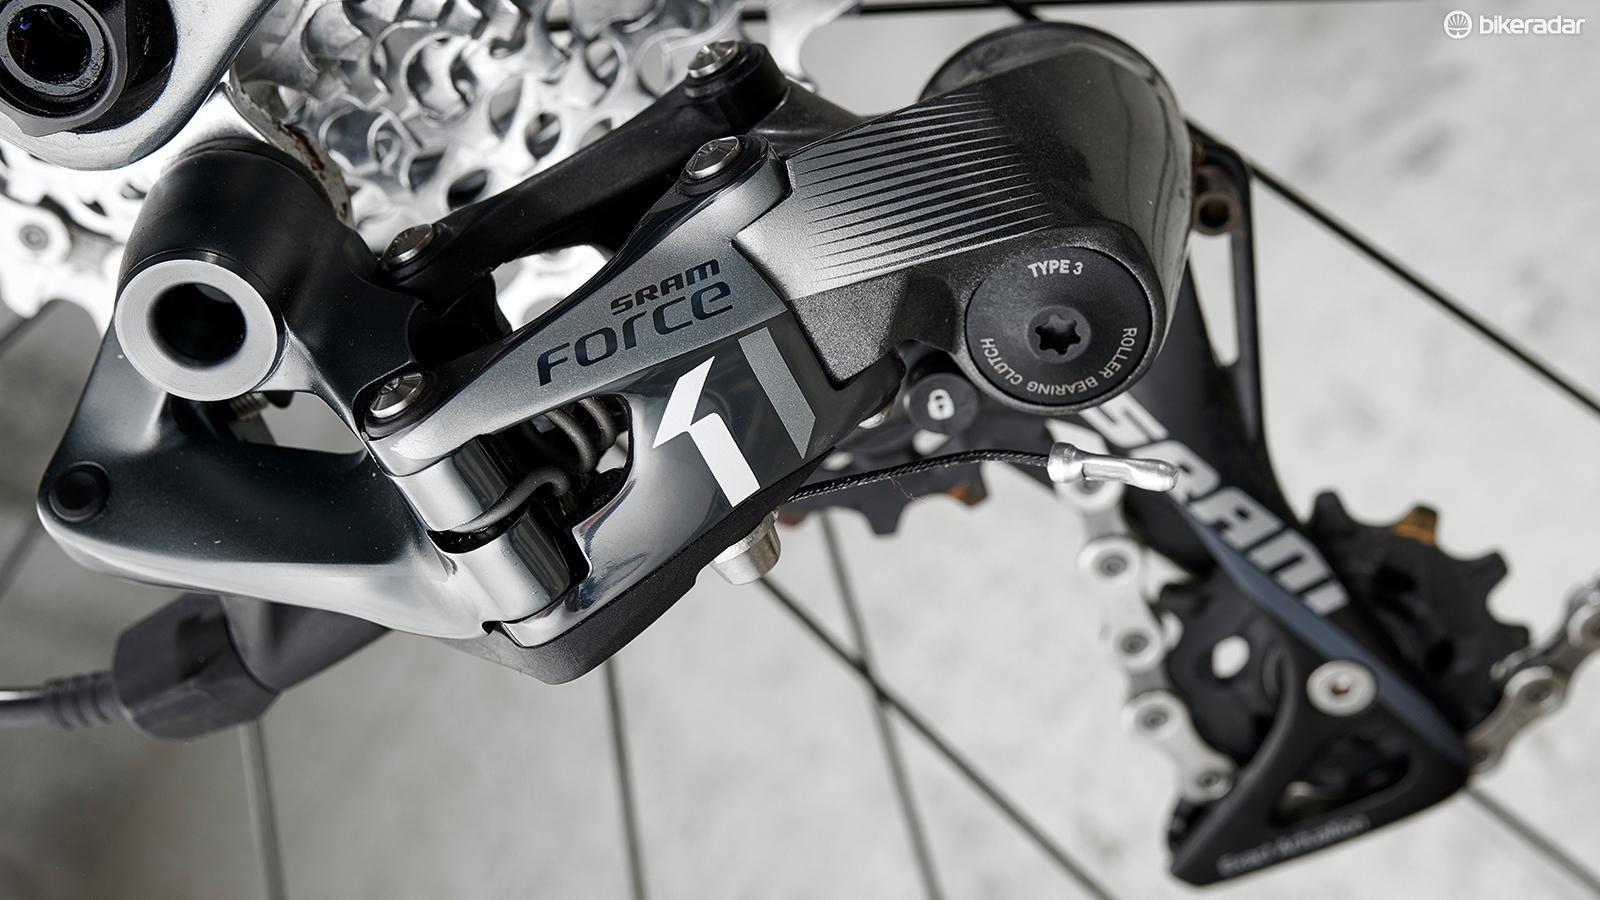 The SRAM Force 1 mech still performed after a thrashing through mud and debris